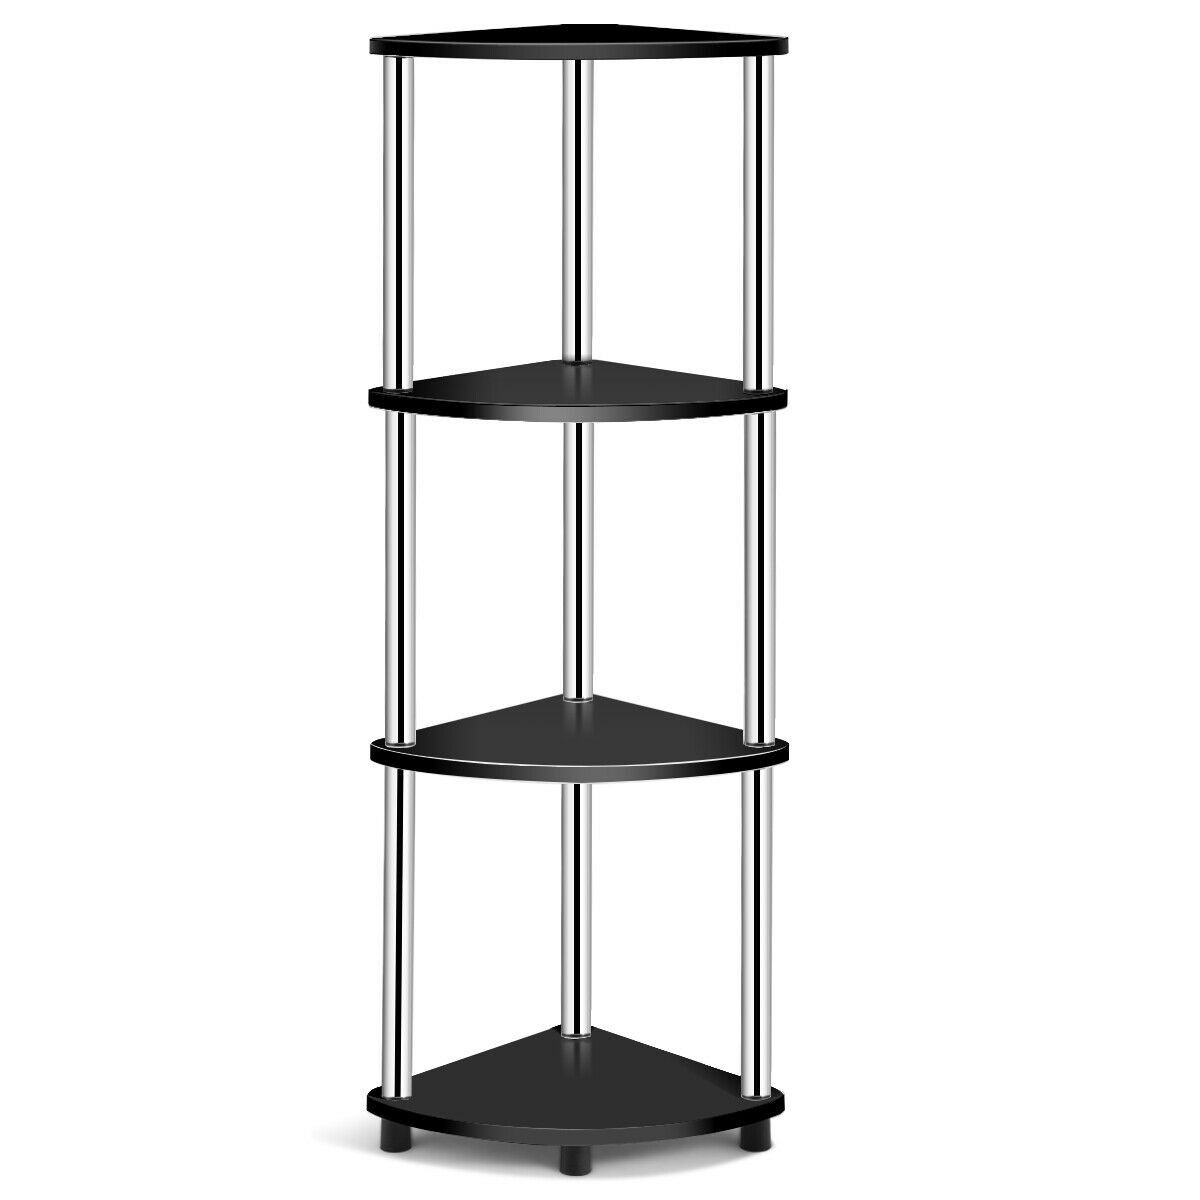 4 Tier Light Duty Living Room Display Stand Corner Shelf Corner Shelves Room Display Shelves